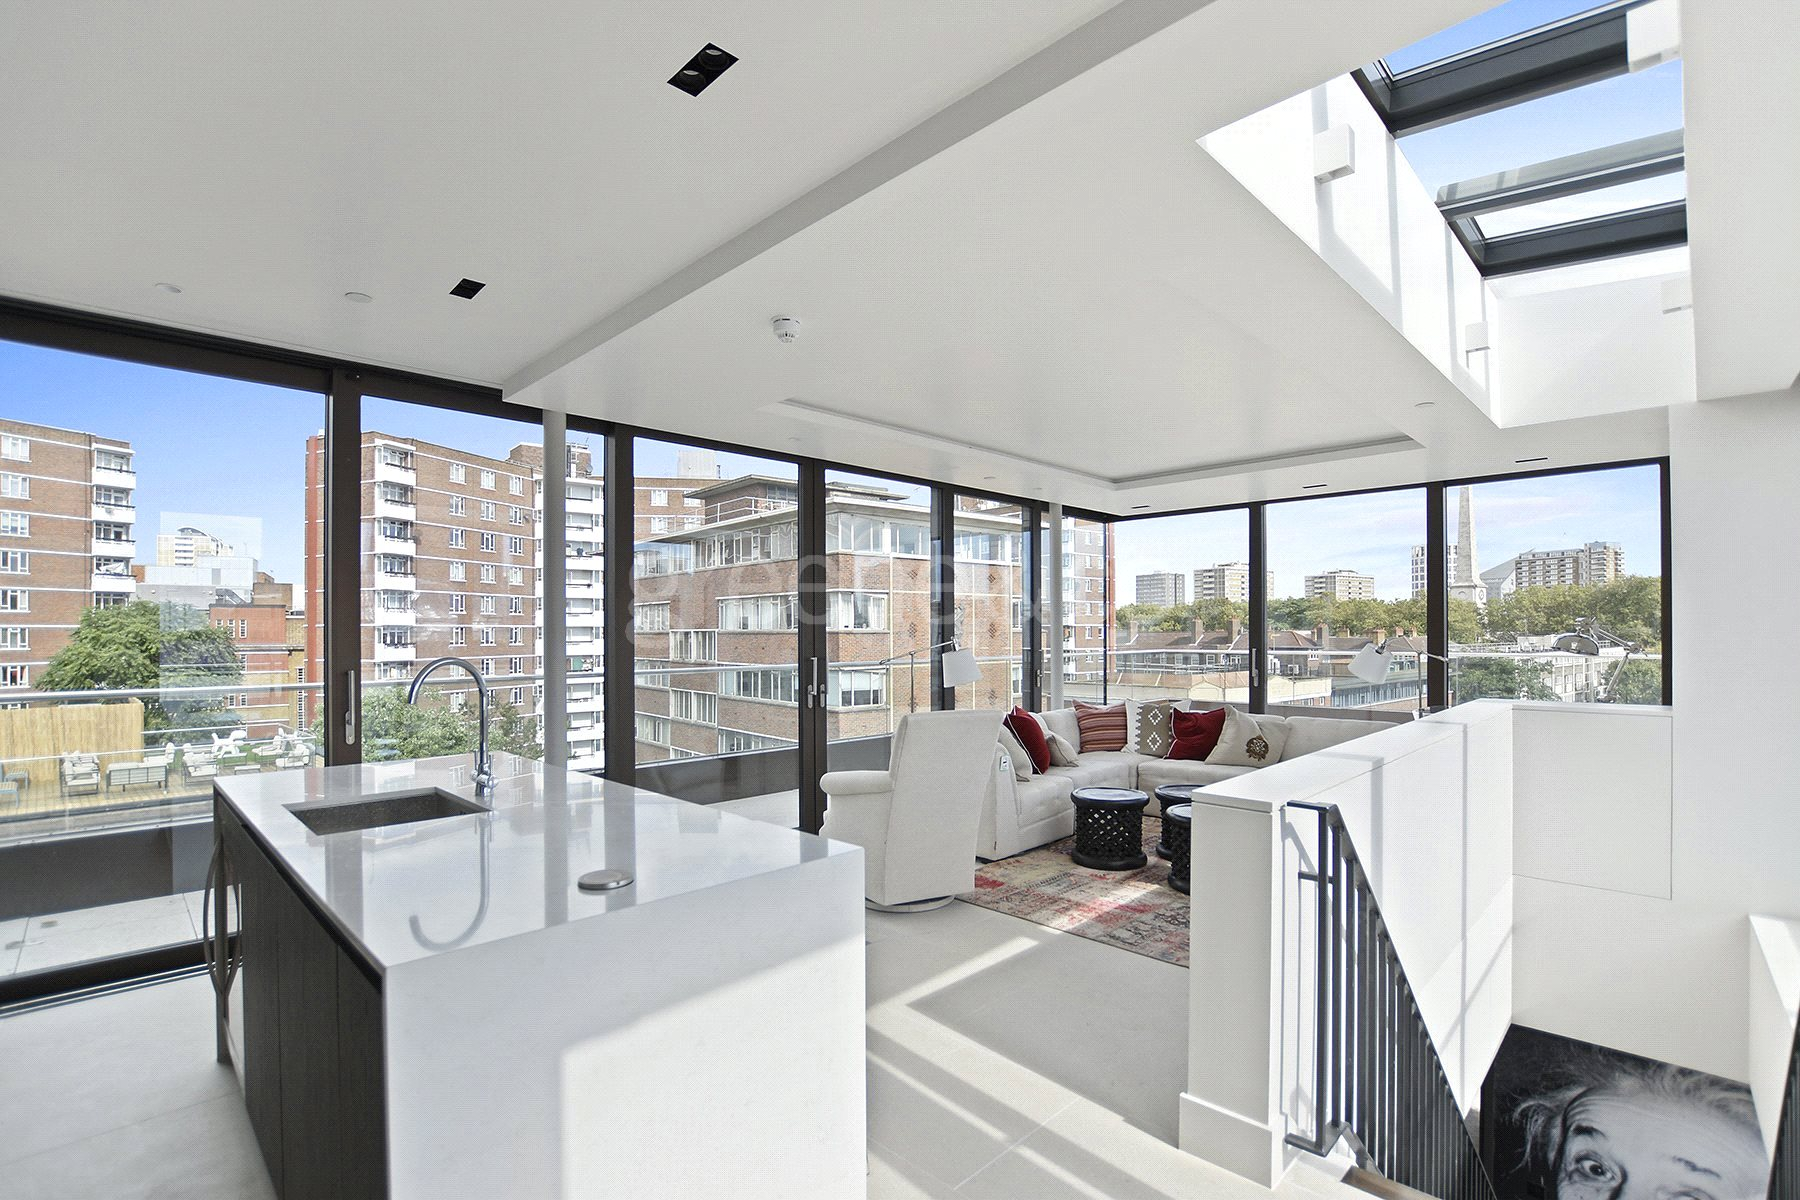 3 Bedrooms House for sale in Old Street, London, EC1V